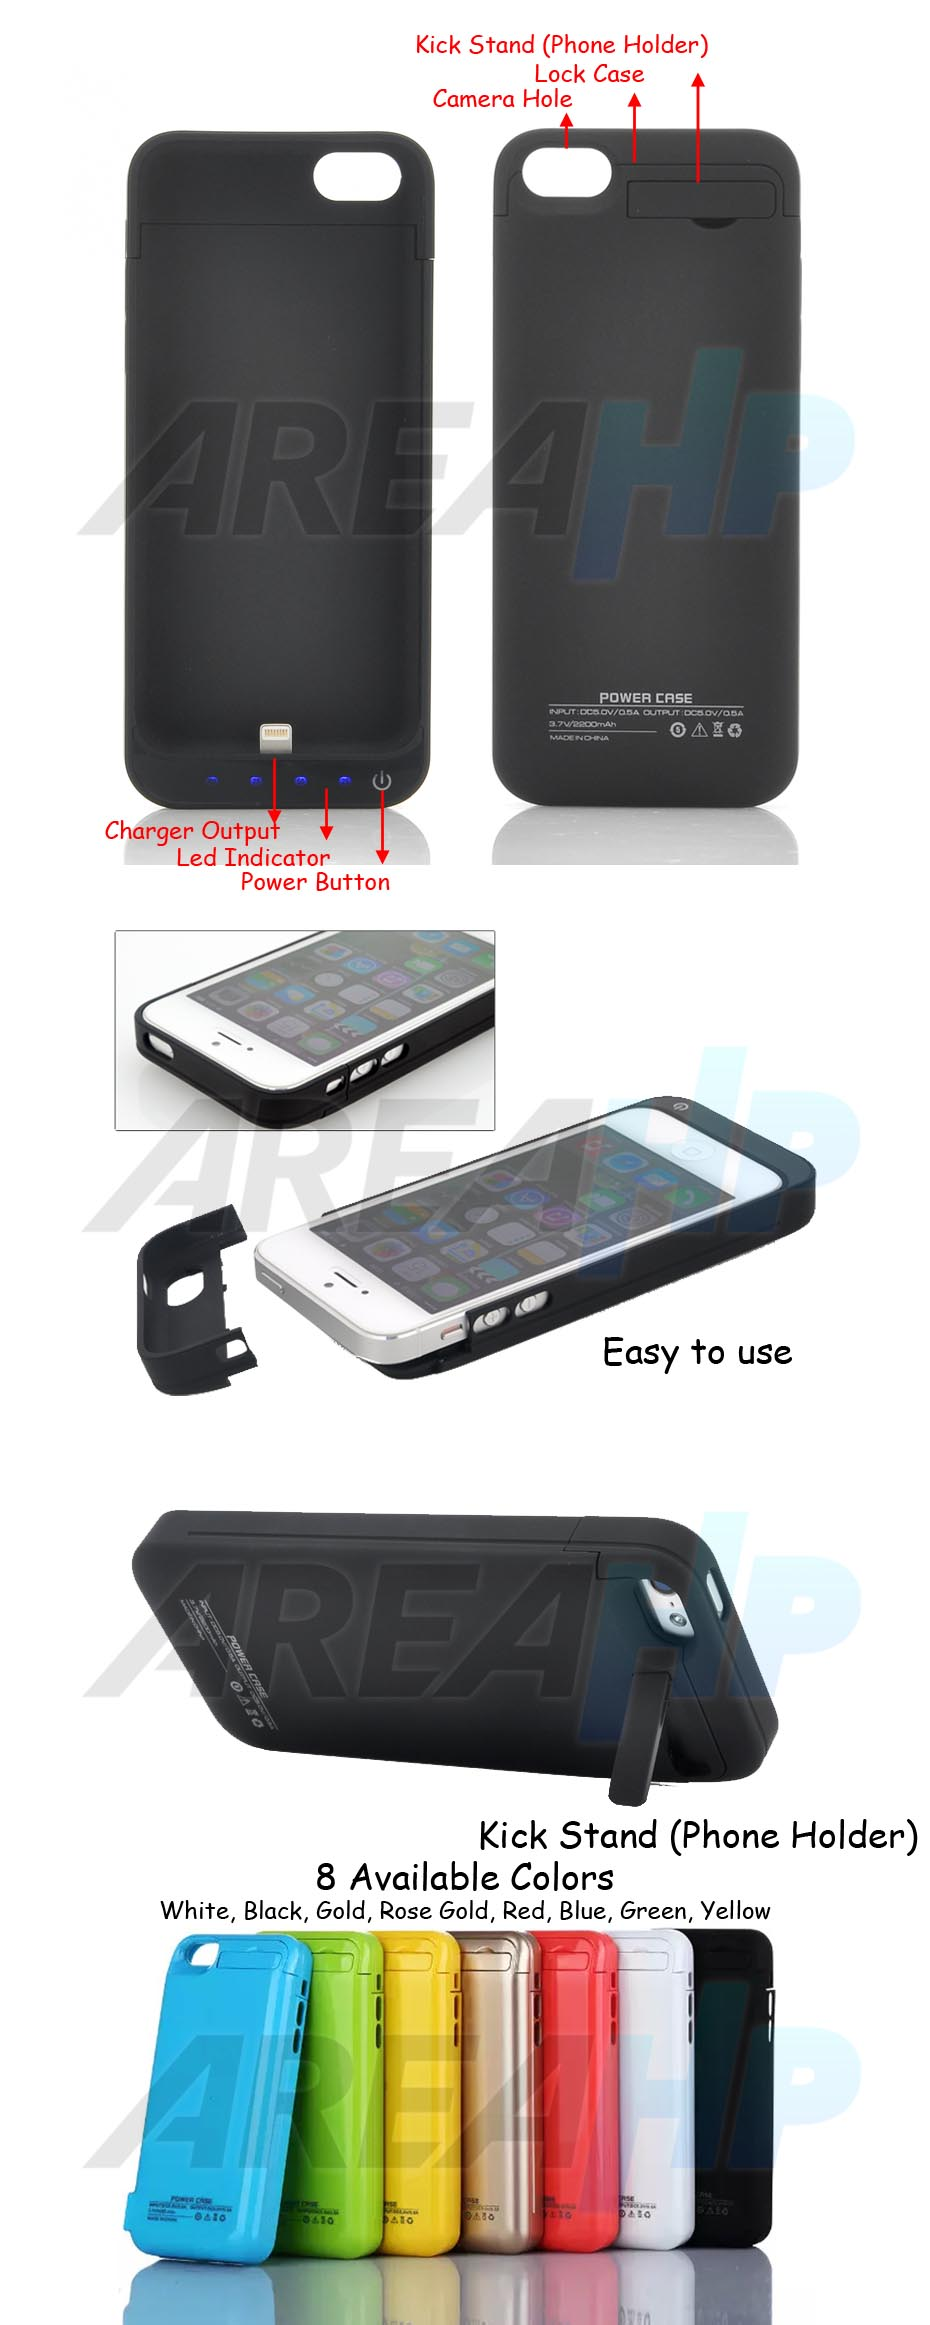 Power Case 2200mAh For iPhone 5, 5C, 5S, SE Overview